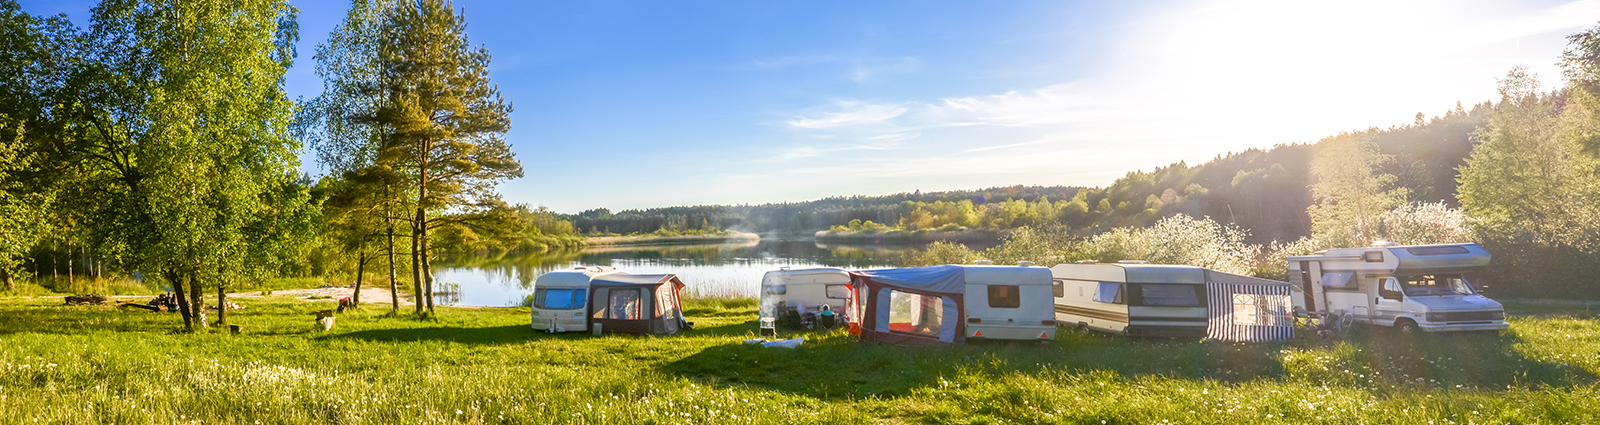 Community of RV's by the river